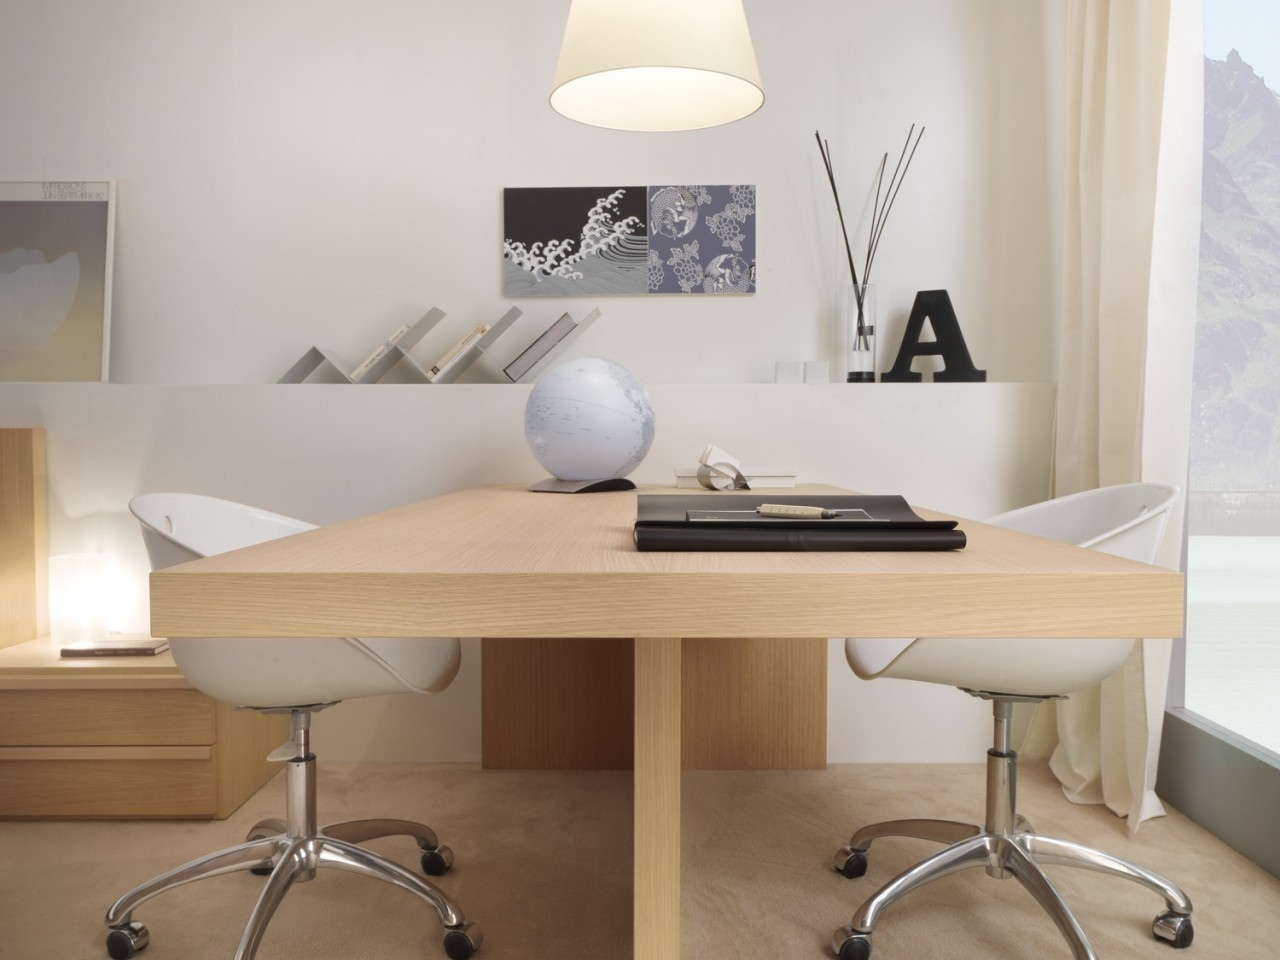 two family members that work from home this dual sided desk is a